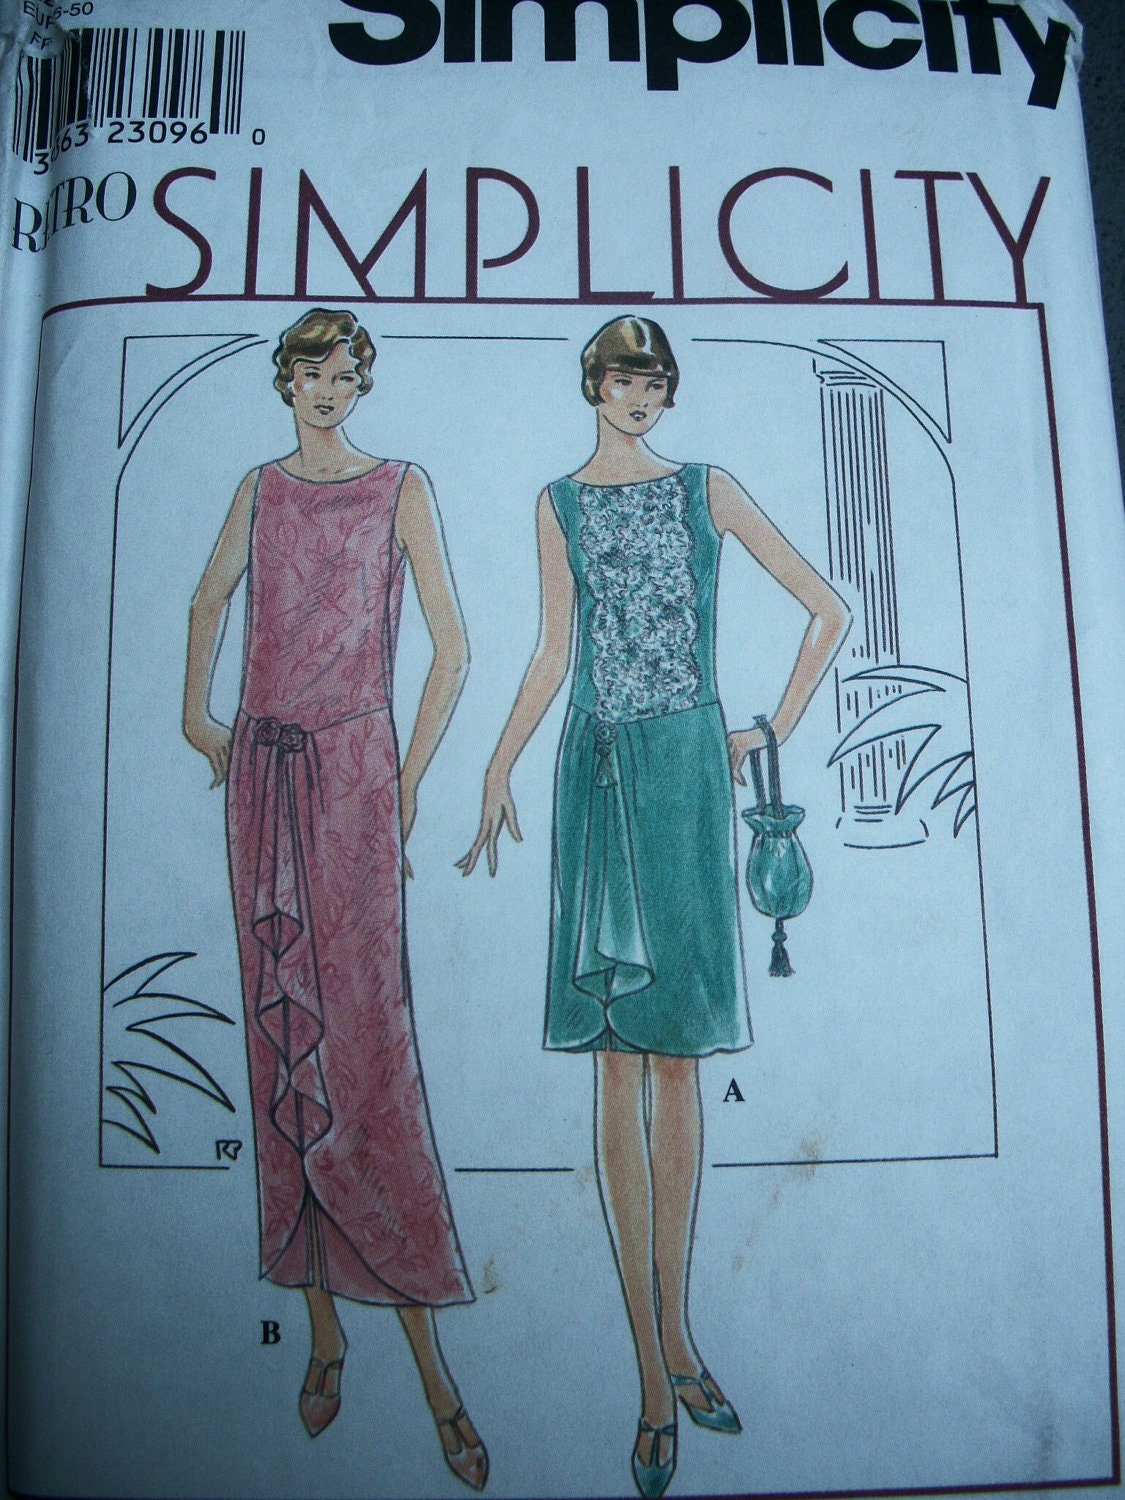 Vintage Simplicity Pattern 8776 Roaring 20s Style Flapper